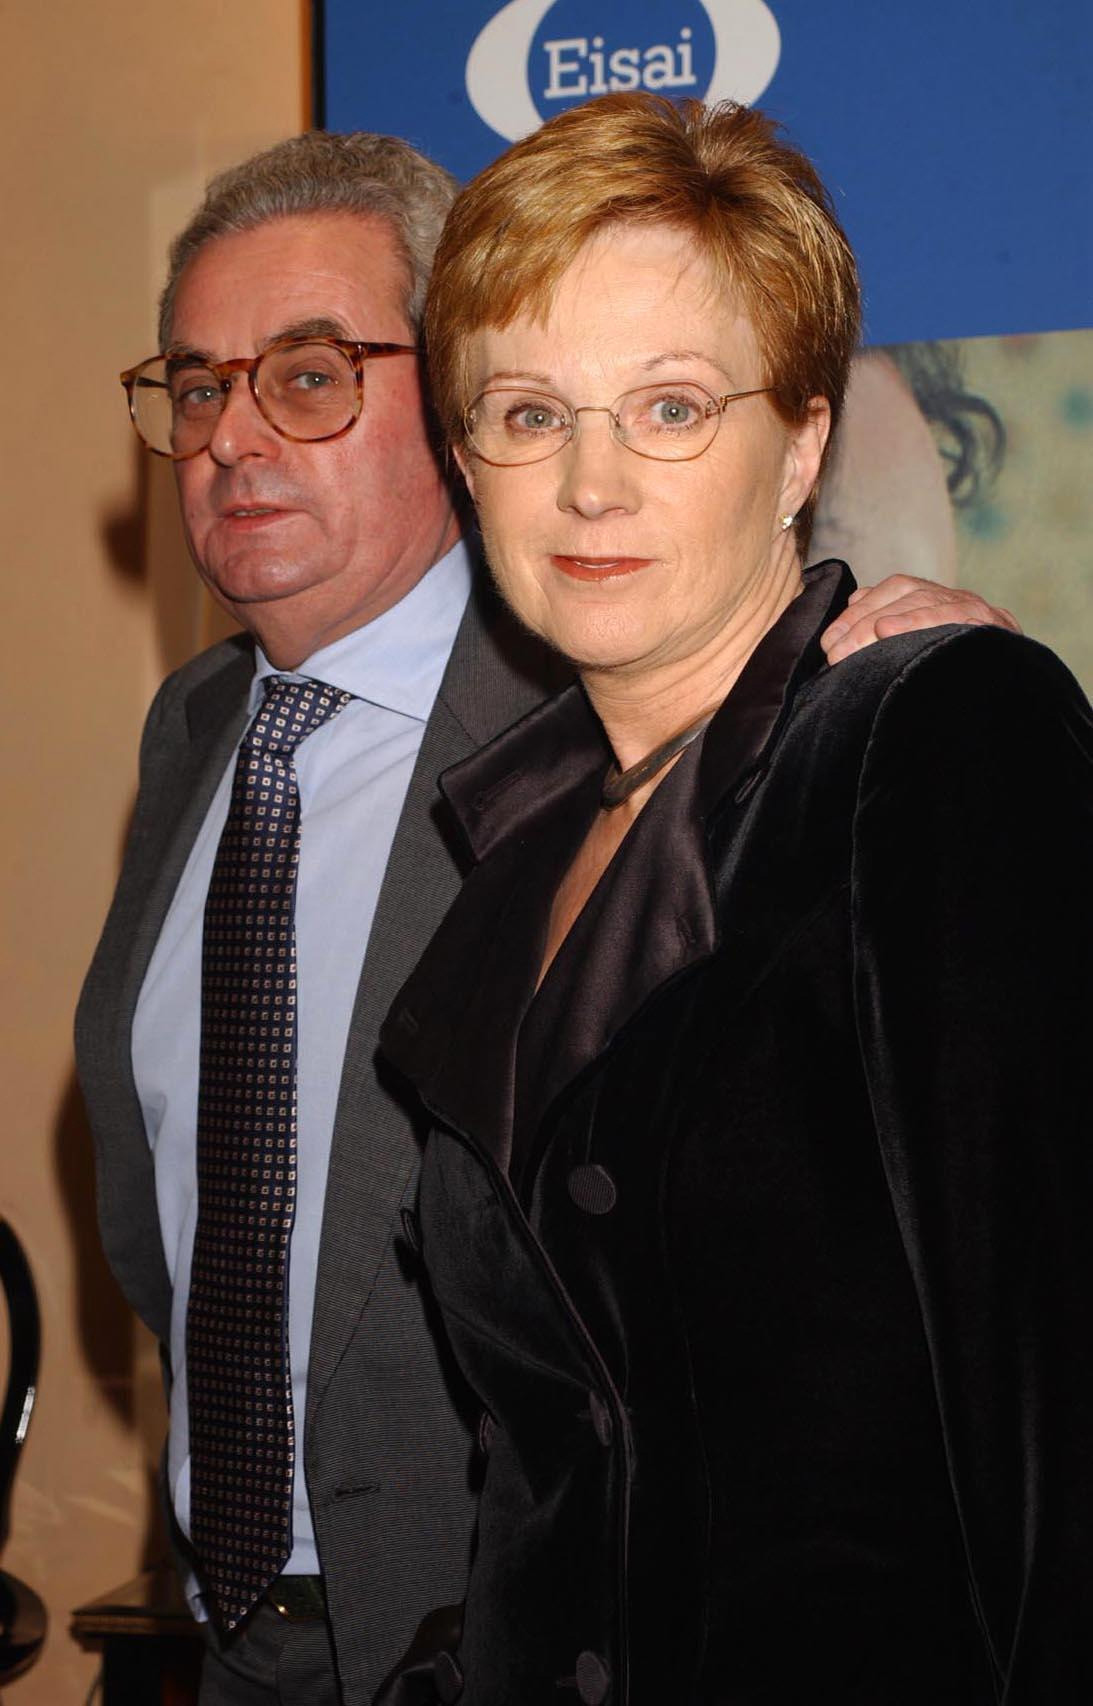 Anne Robinson with her then husband, John Penrose in 2002 (Yui Mok/PA)